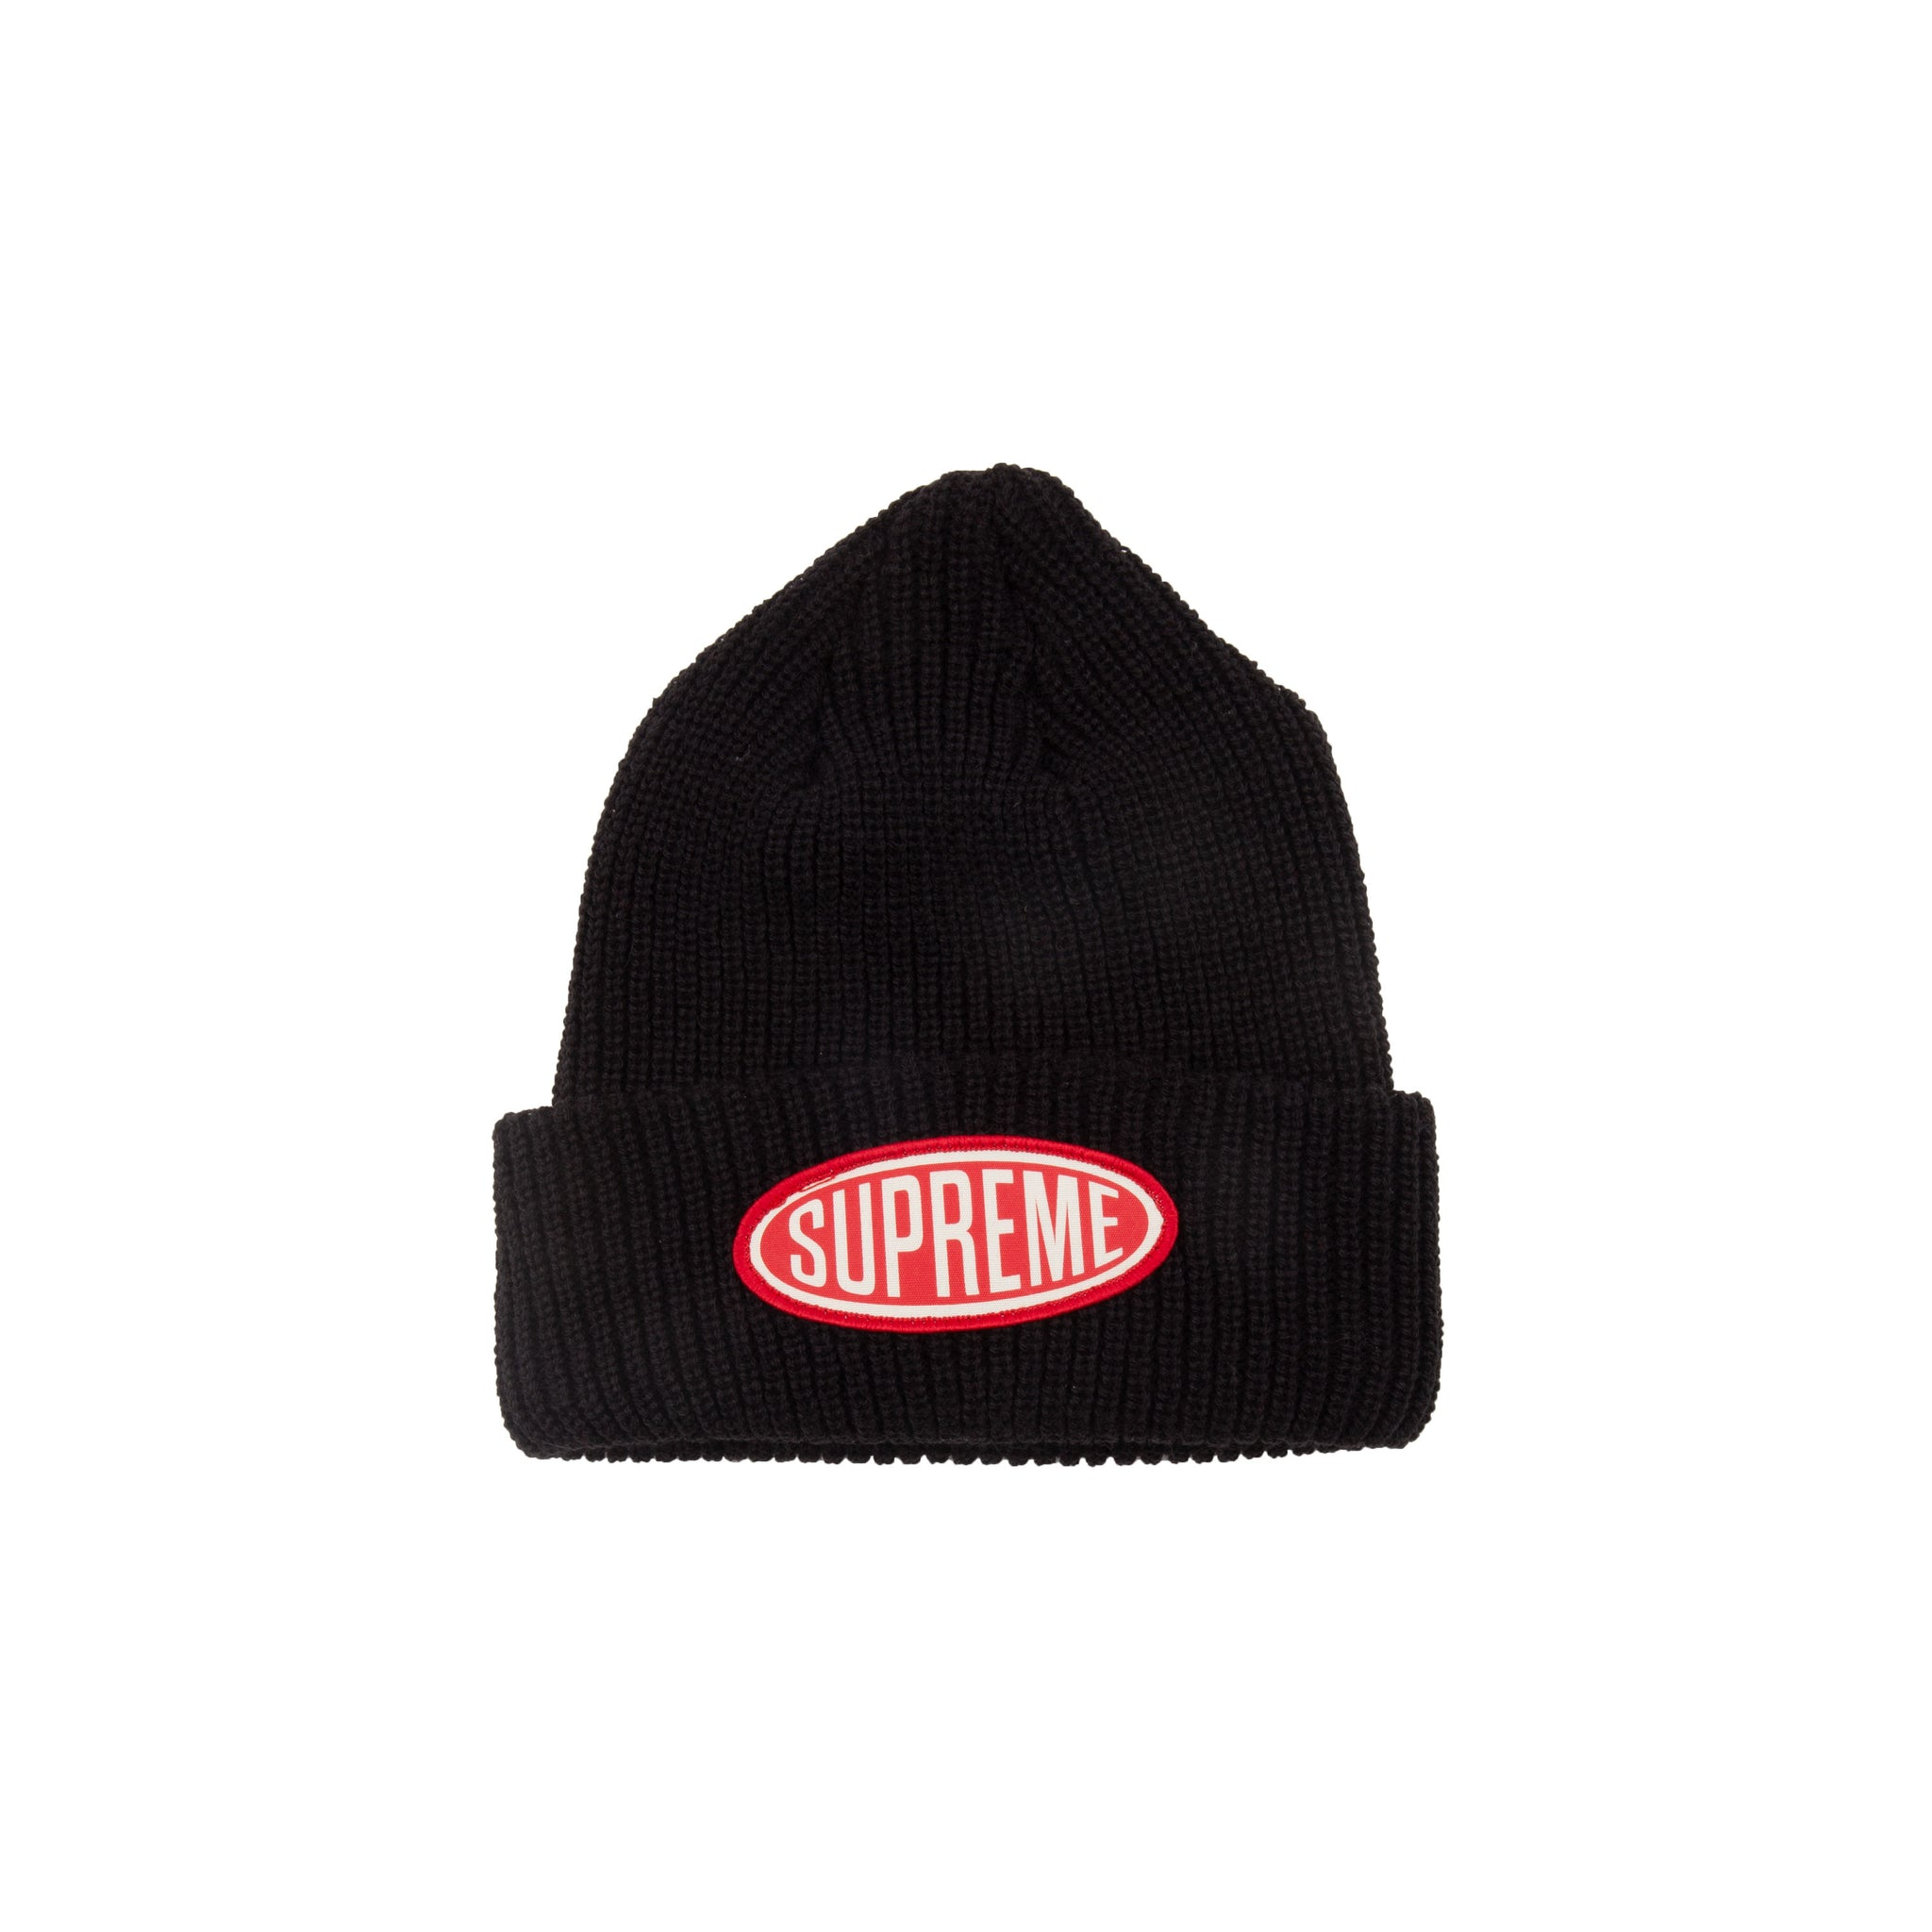 Supreme Black Oval Patch Beanie